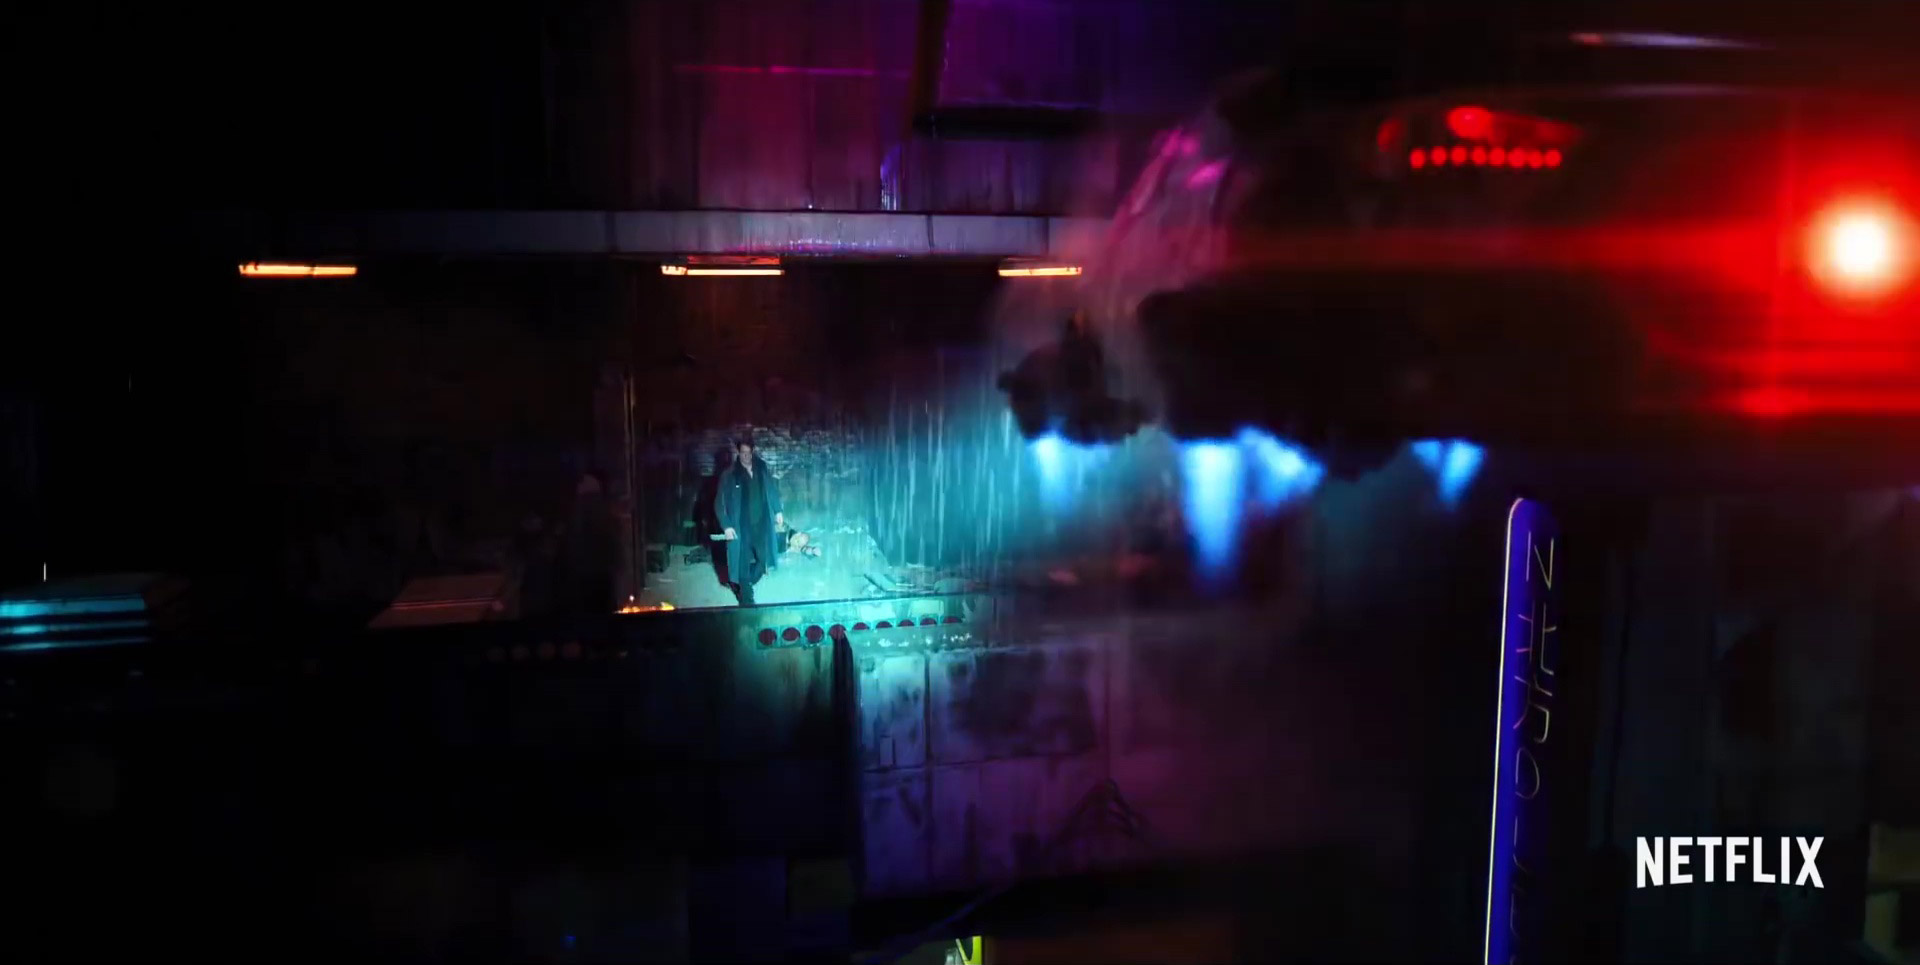 First Cool Trailer for Altered Carbon from Netflix